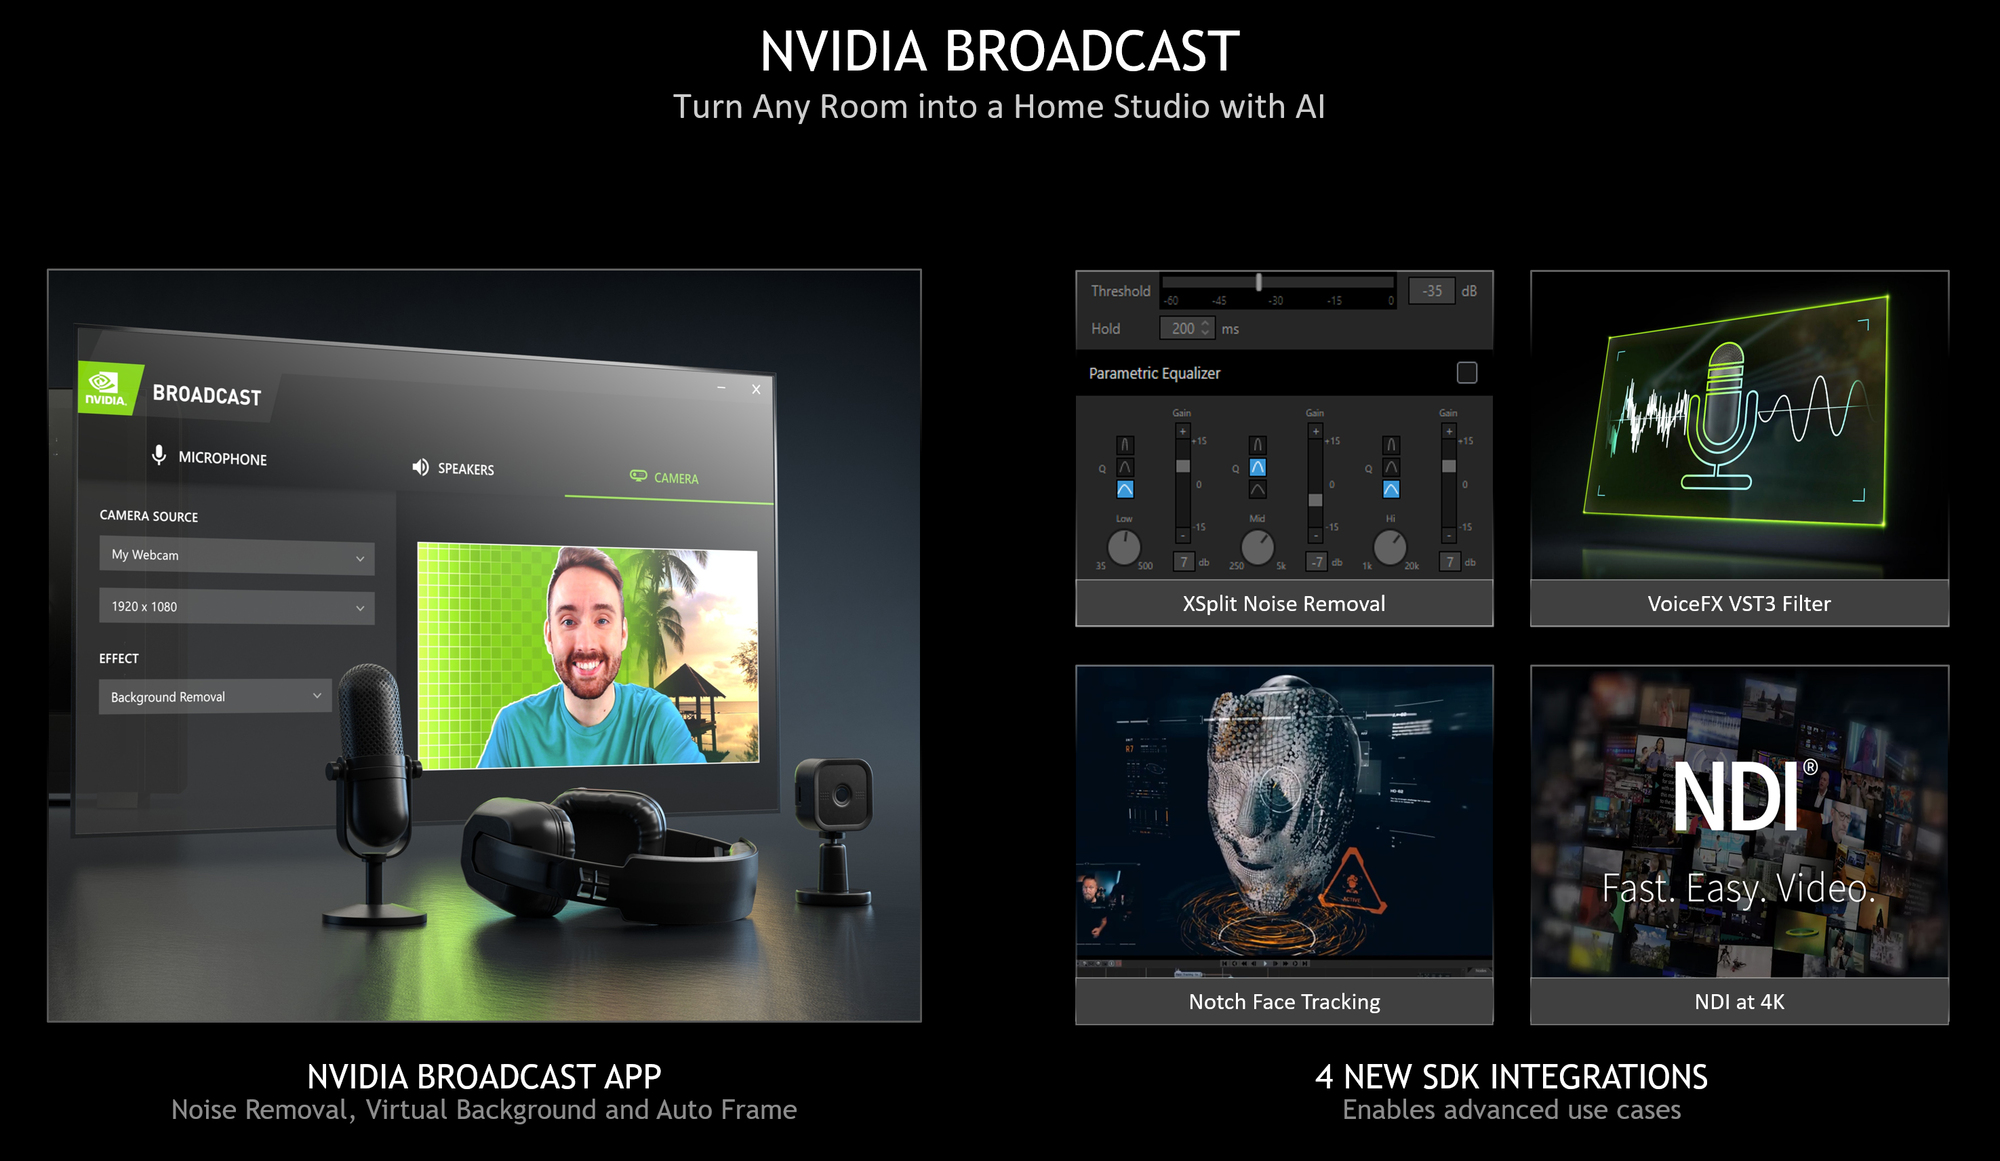 NVIDIA GeForce RTX 3060 Ti coming December 2nd geforce-rtx-30-series-nvidia-broadcast-an-essential-tool.jpg